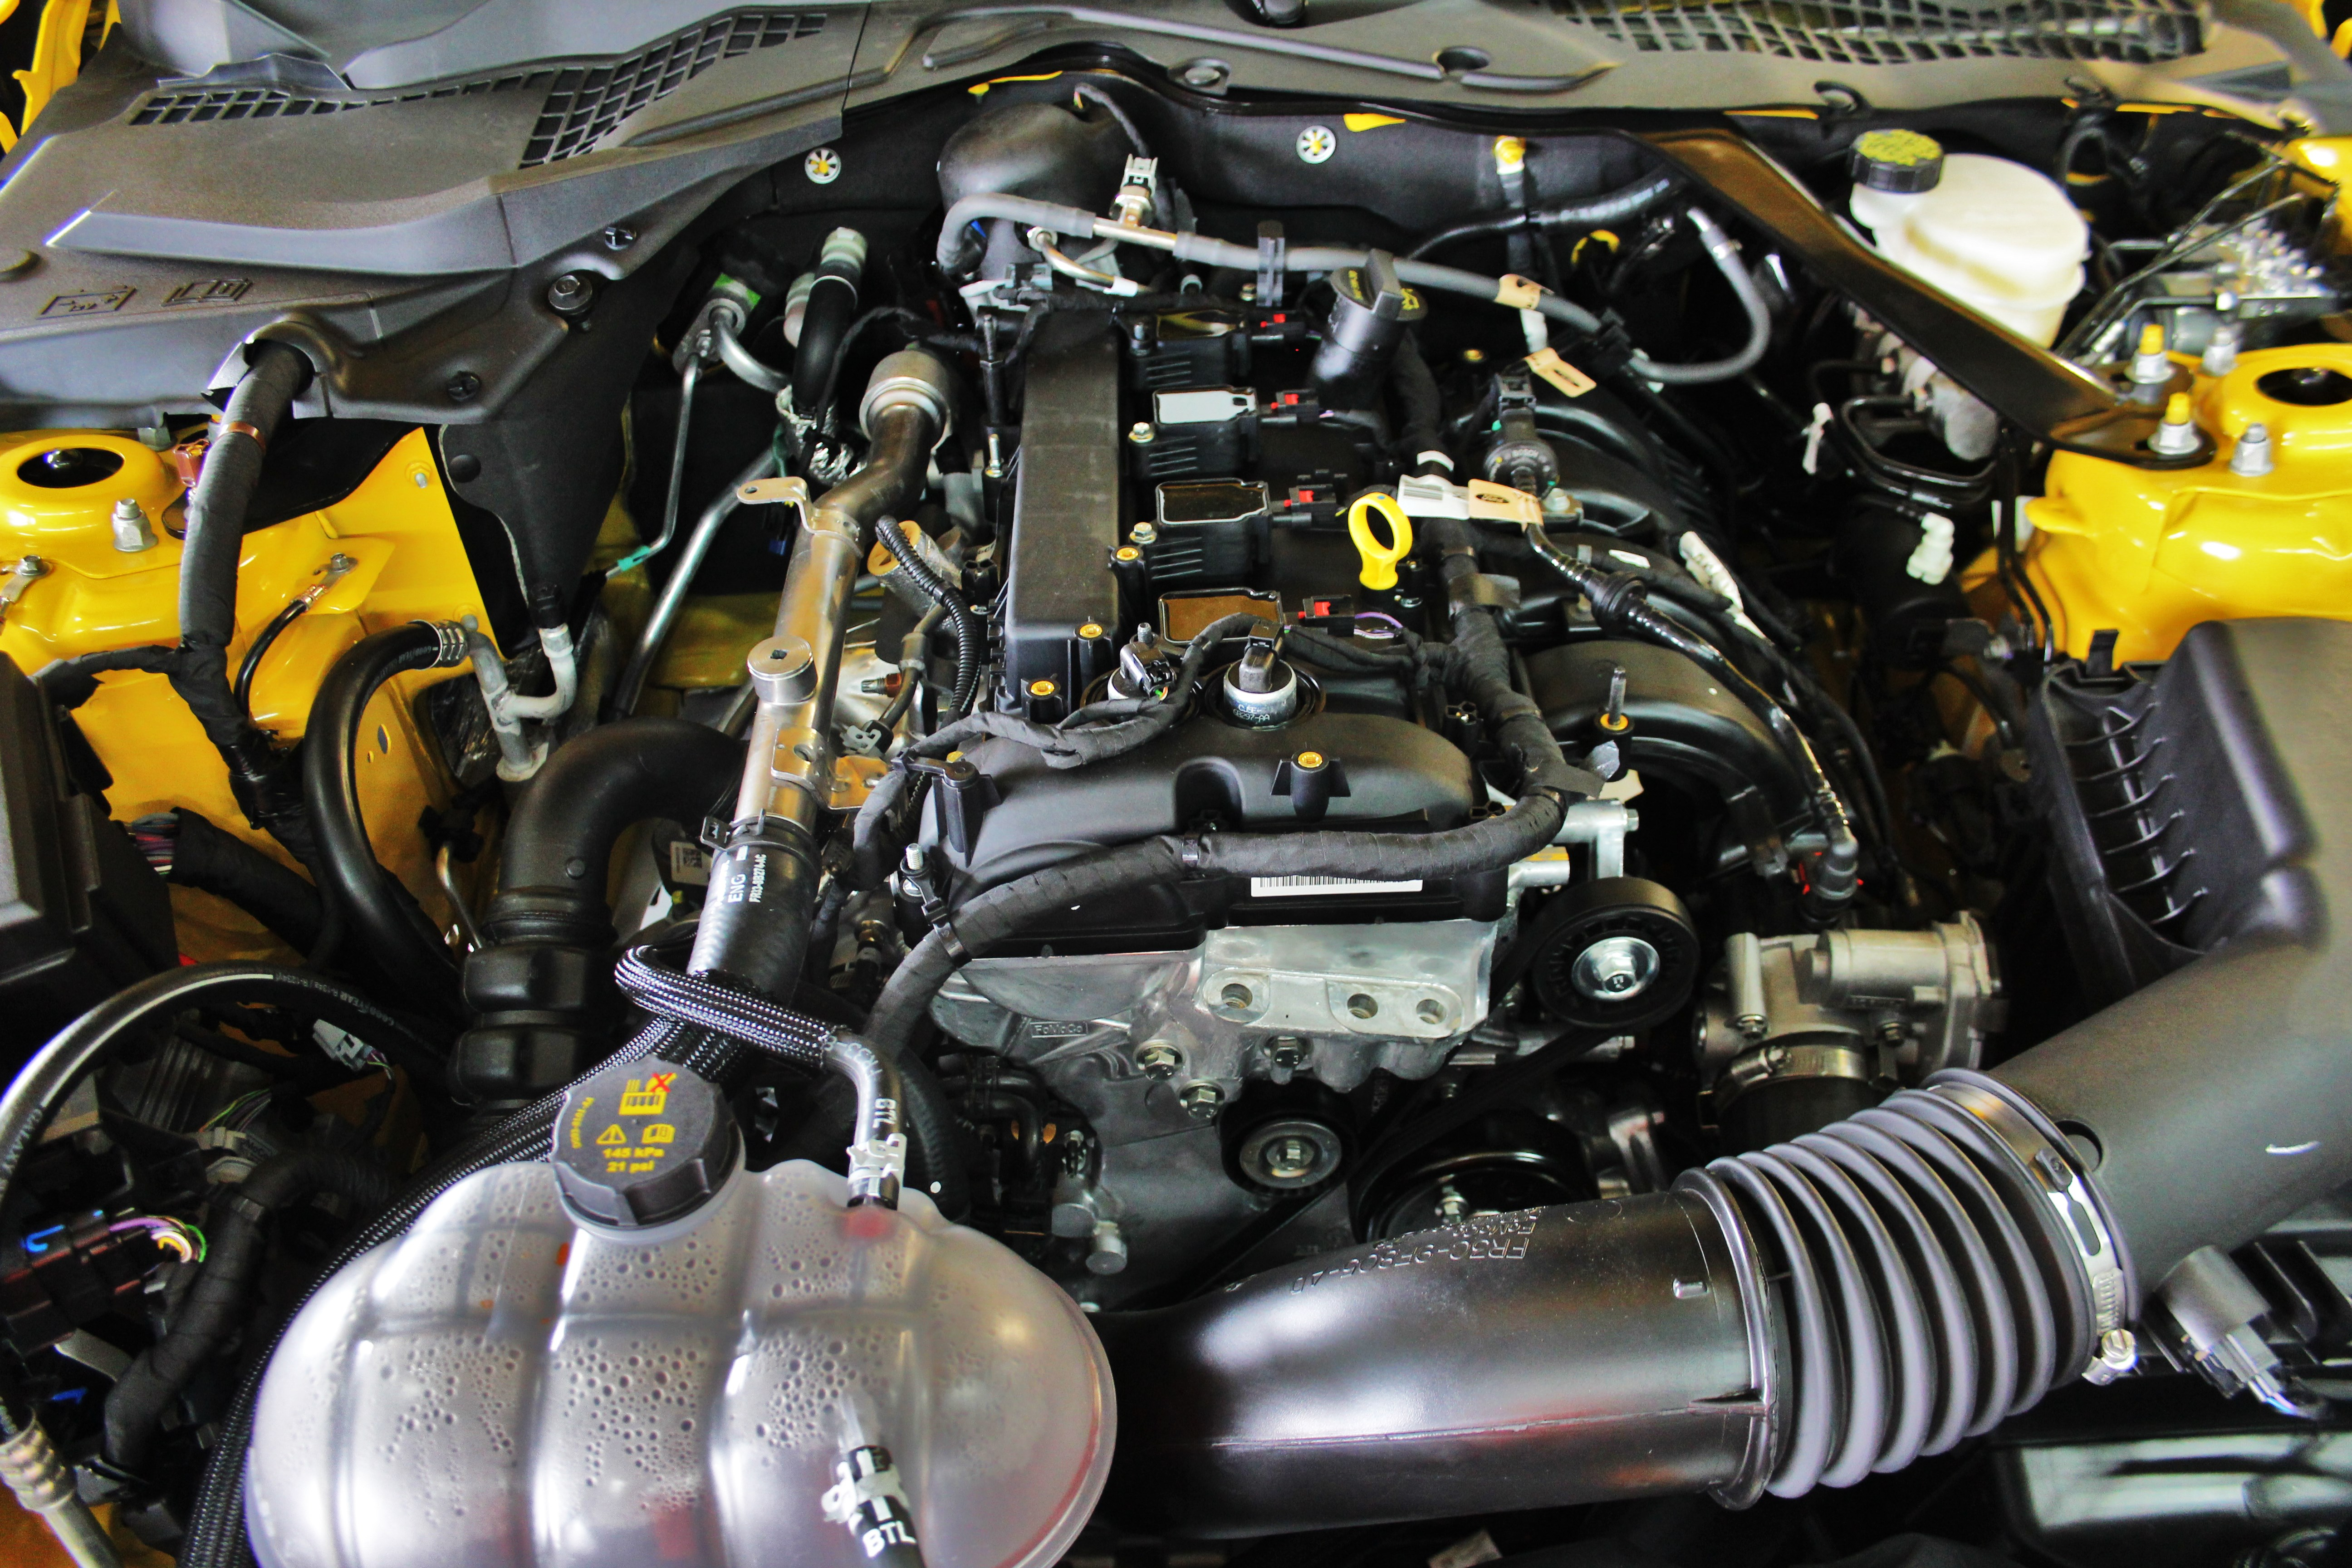 Ford Mustang 2.3 Turbo Engine